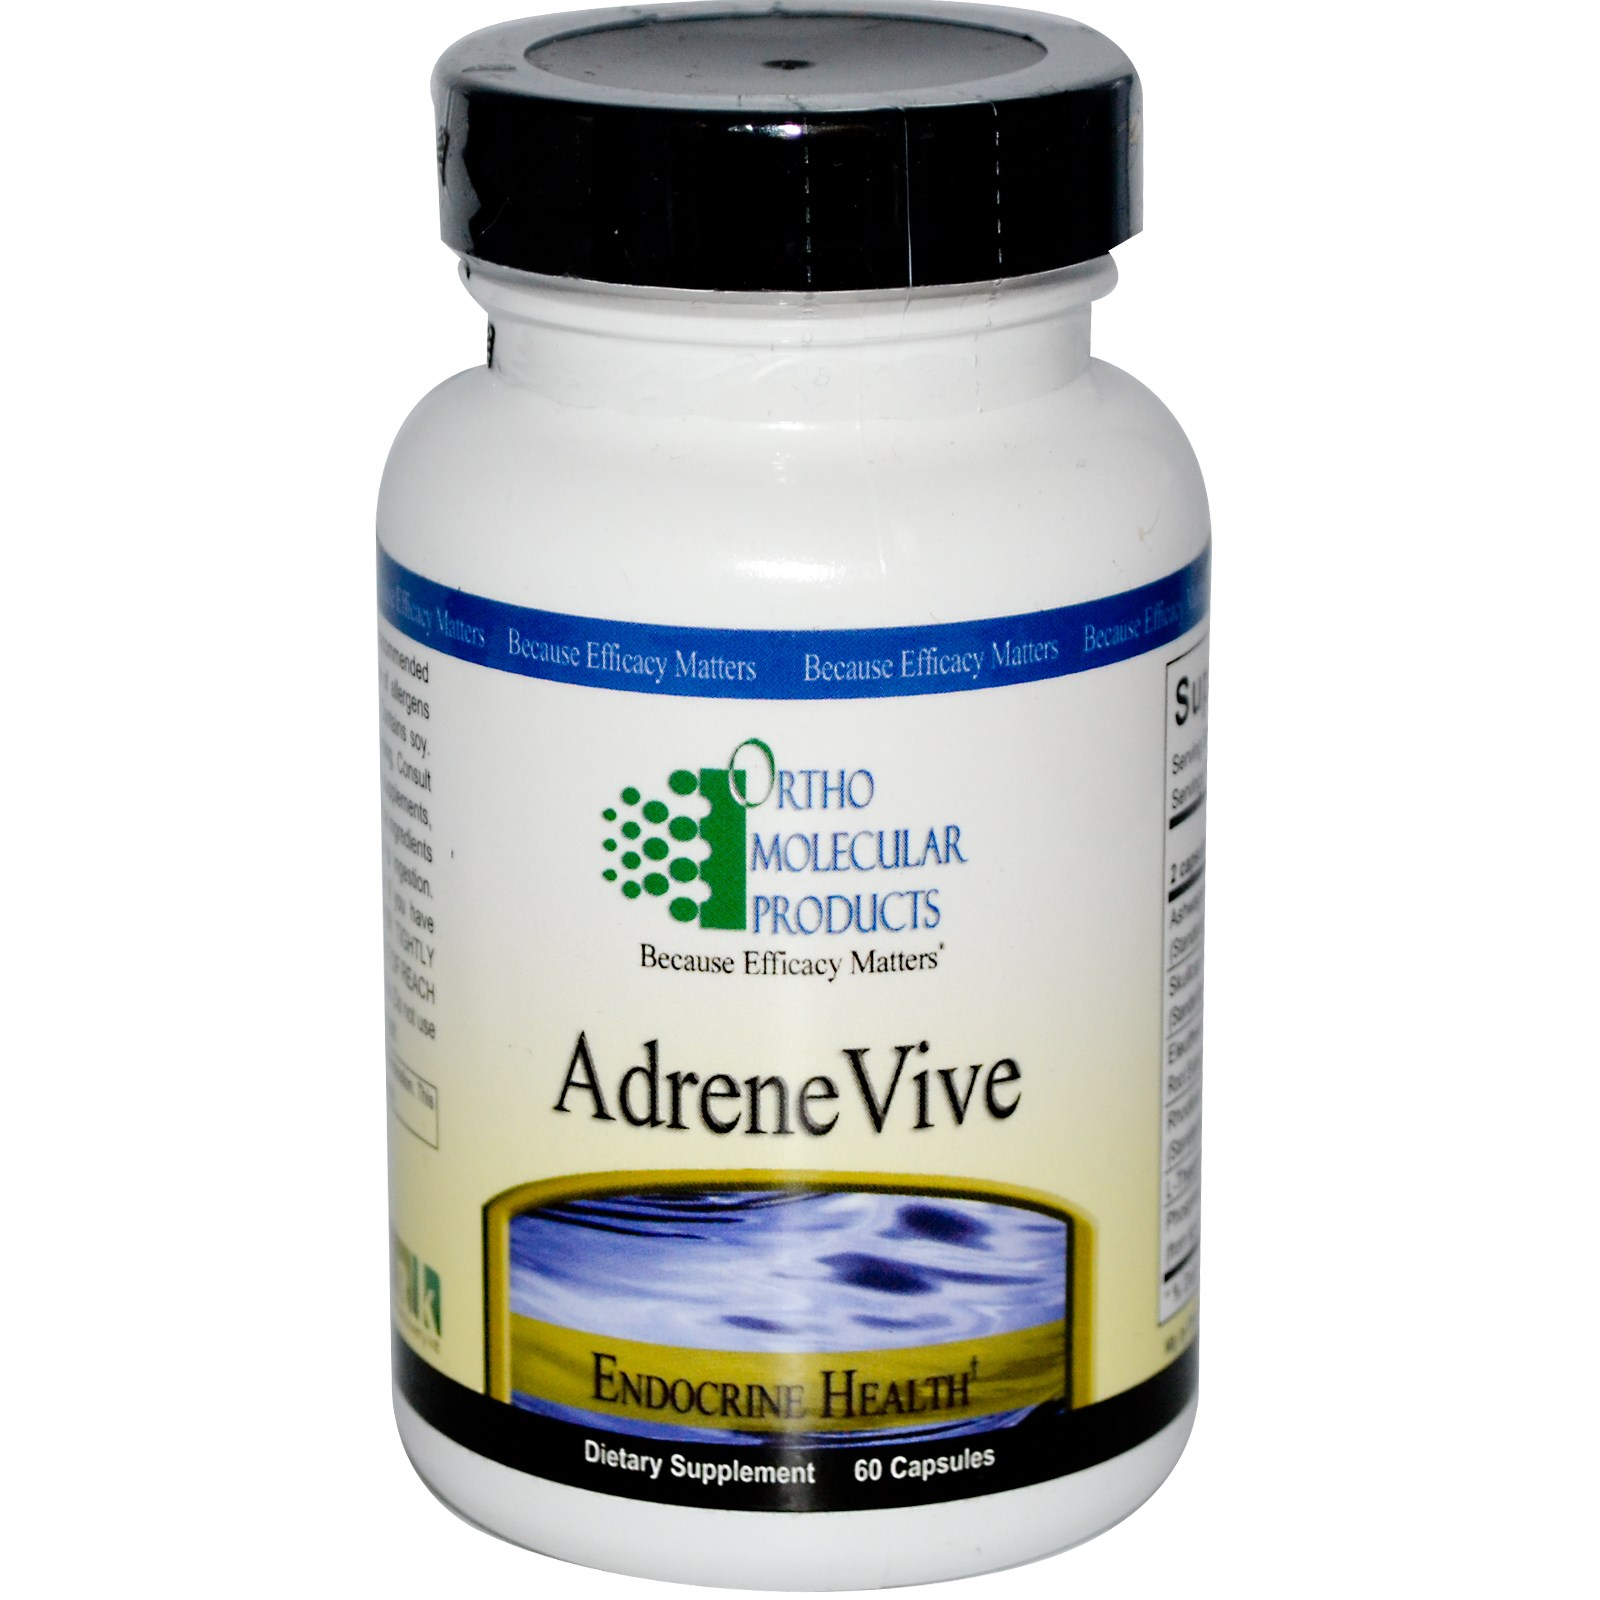 AdreneVive and Its Side Effects – Is It for You? A Review